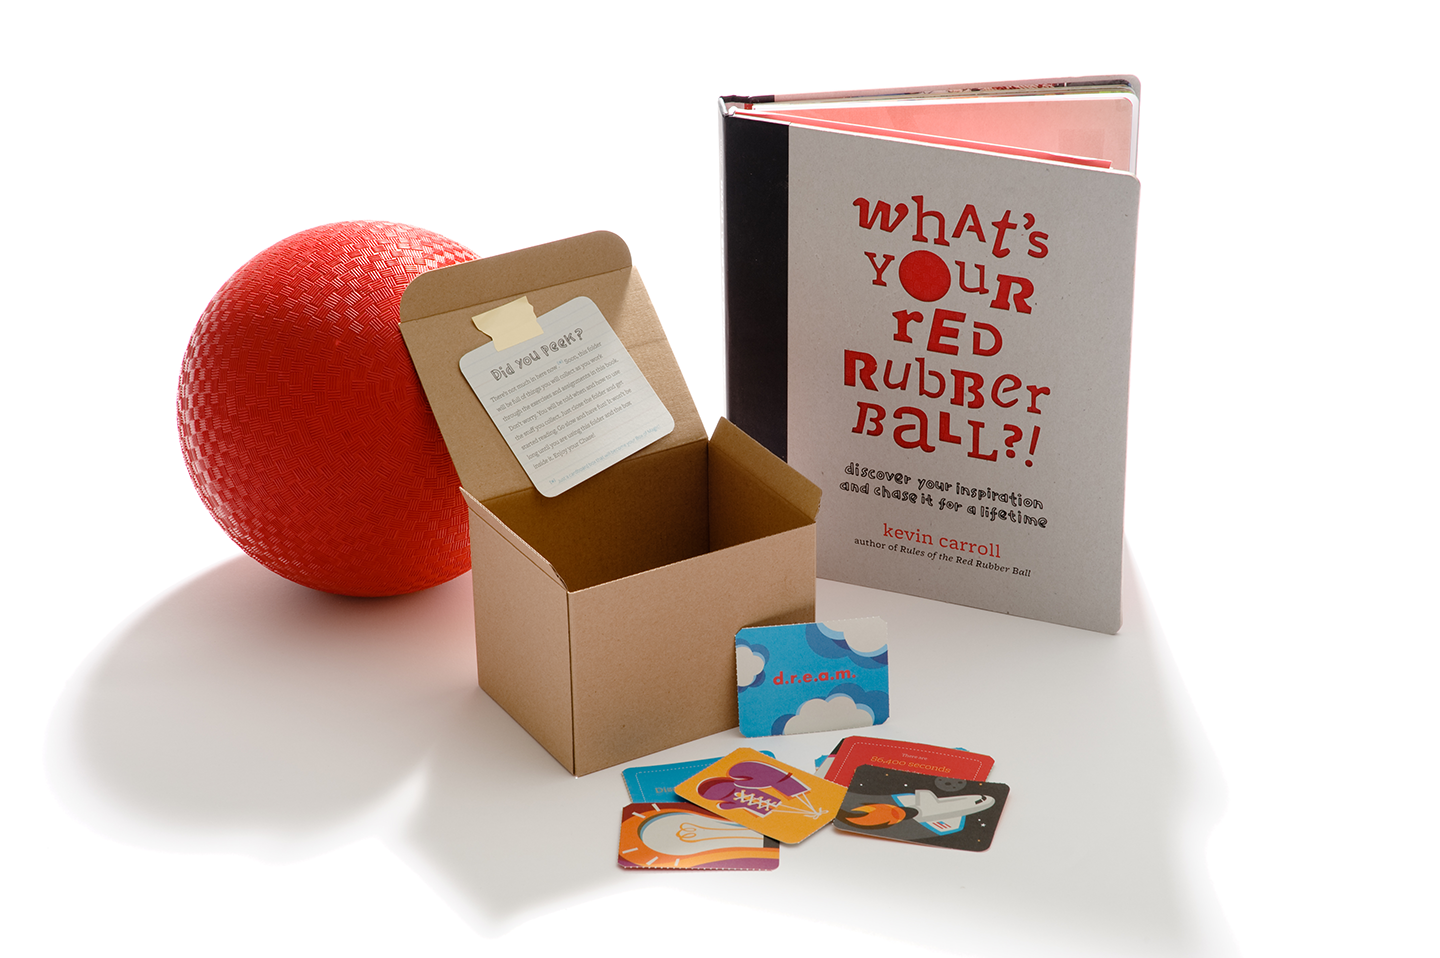 What's Your Red Rubber Ball unboxed